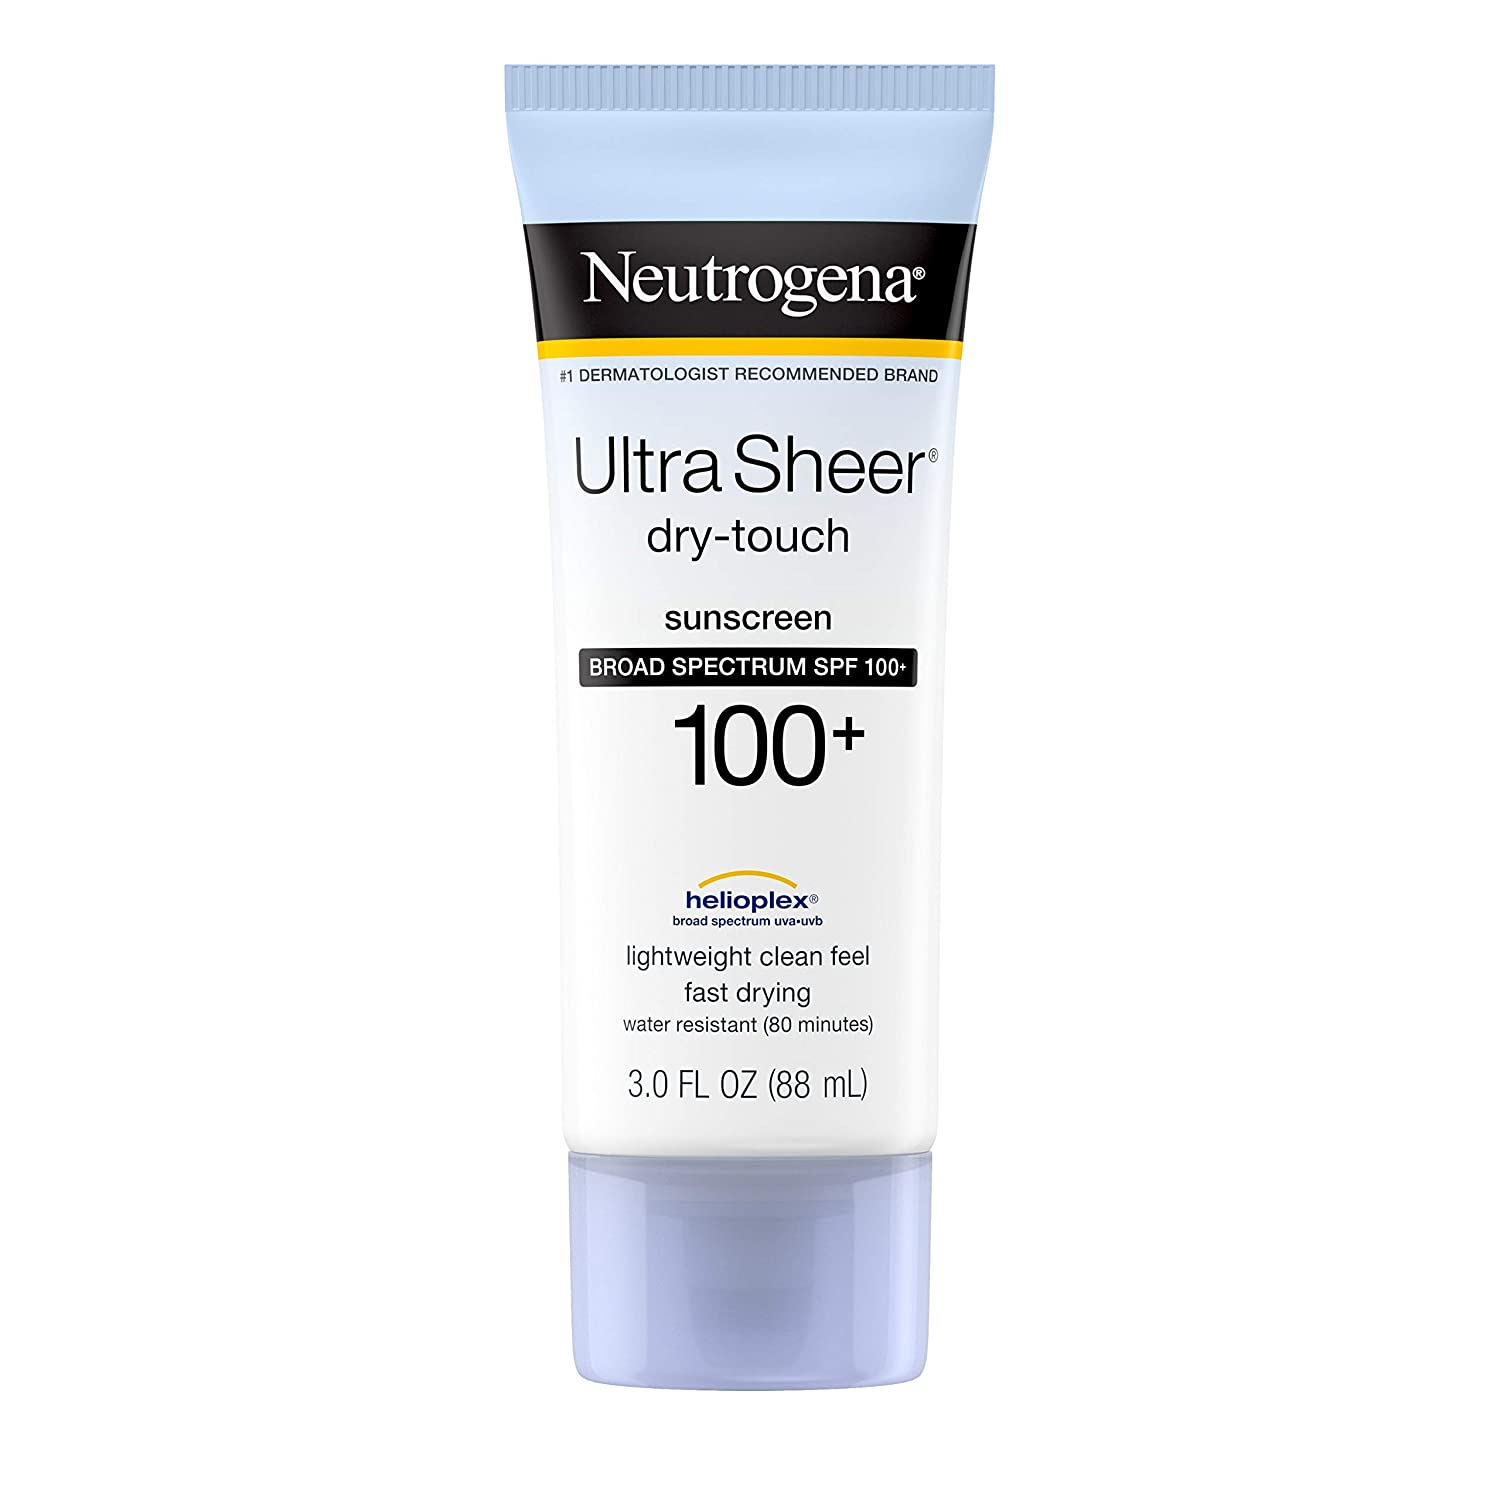 Neutrogena Ultra Sheer Dry-Touch Sunscreen, best non-greasy sunscreens